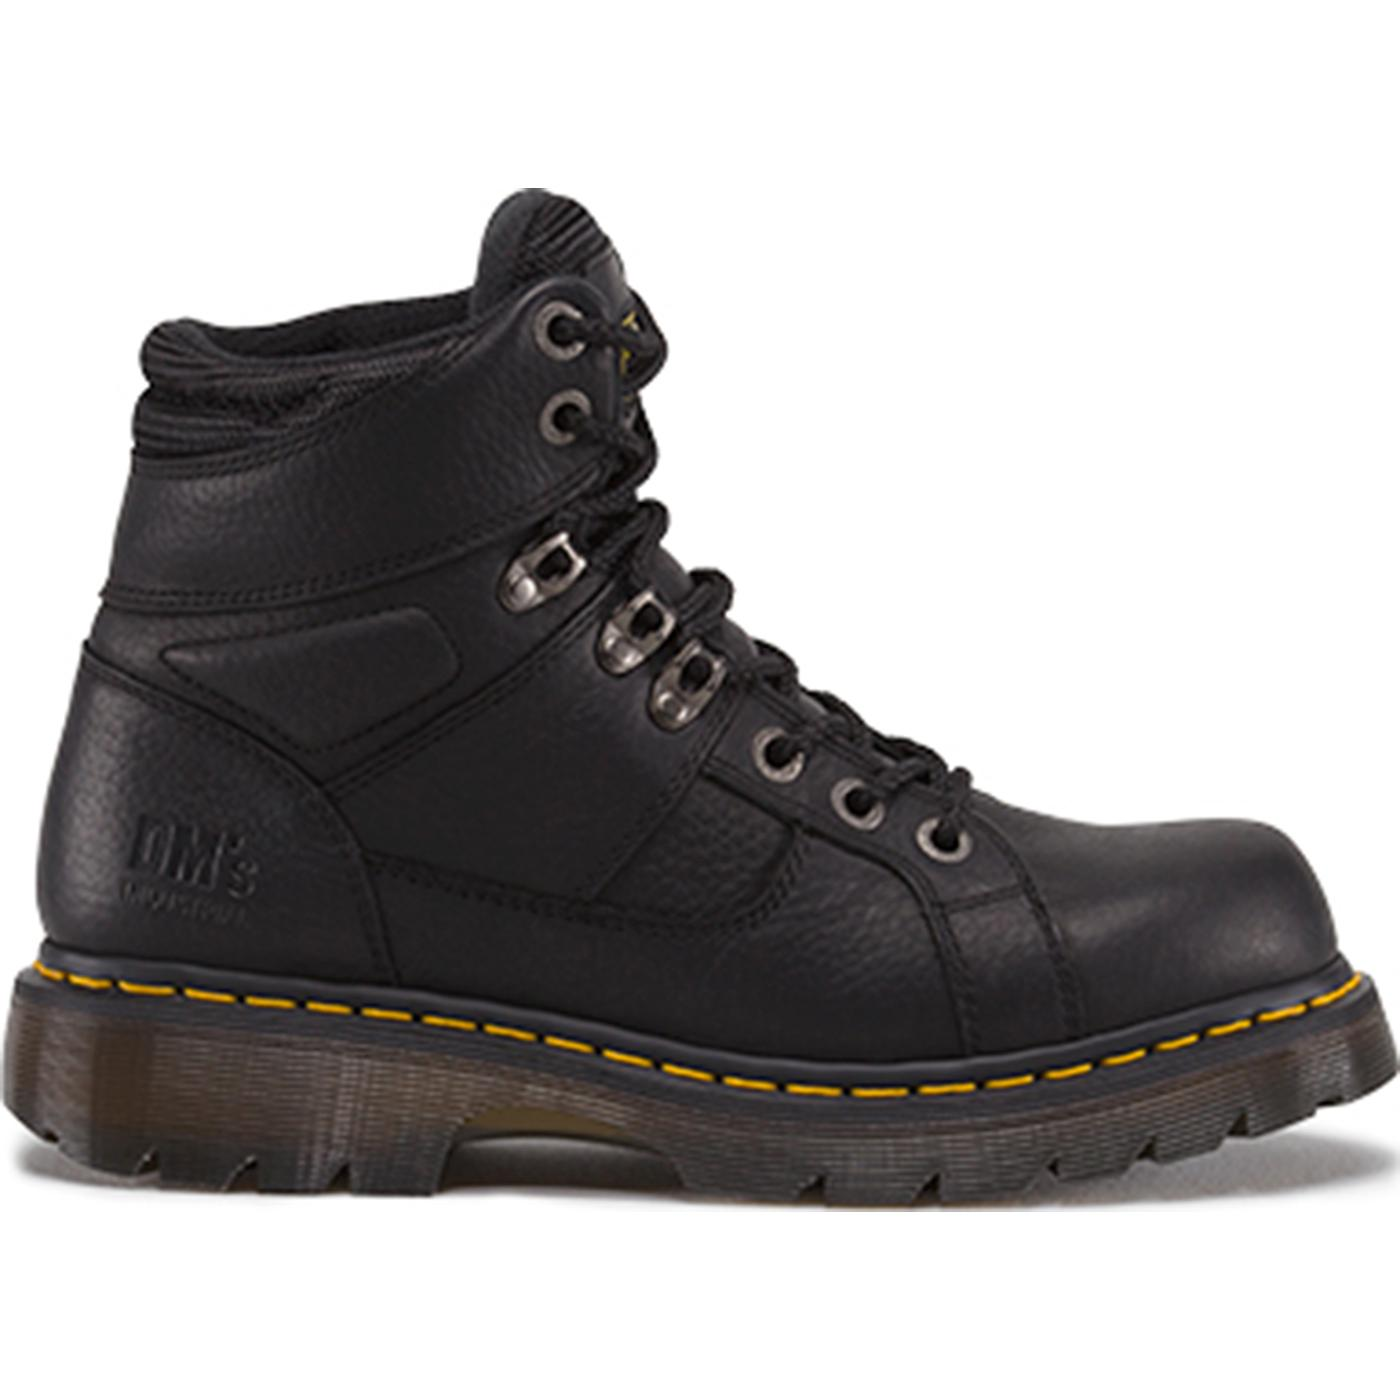 2e53b5a24db Dr. Martens Ironbridge Steel Toe CSA Approved Puncture-Resistant Work Boot